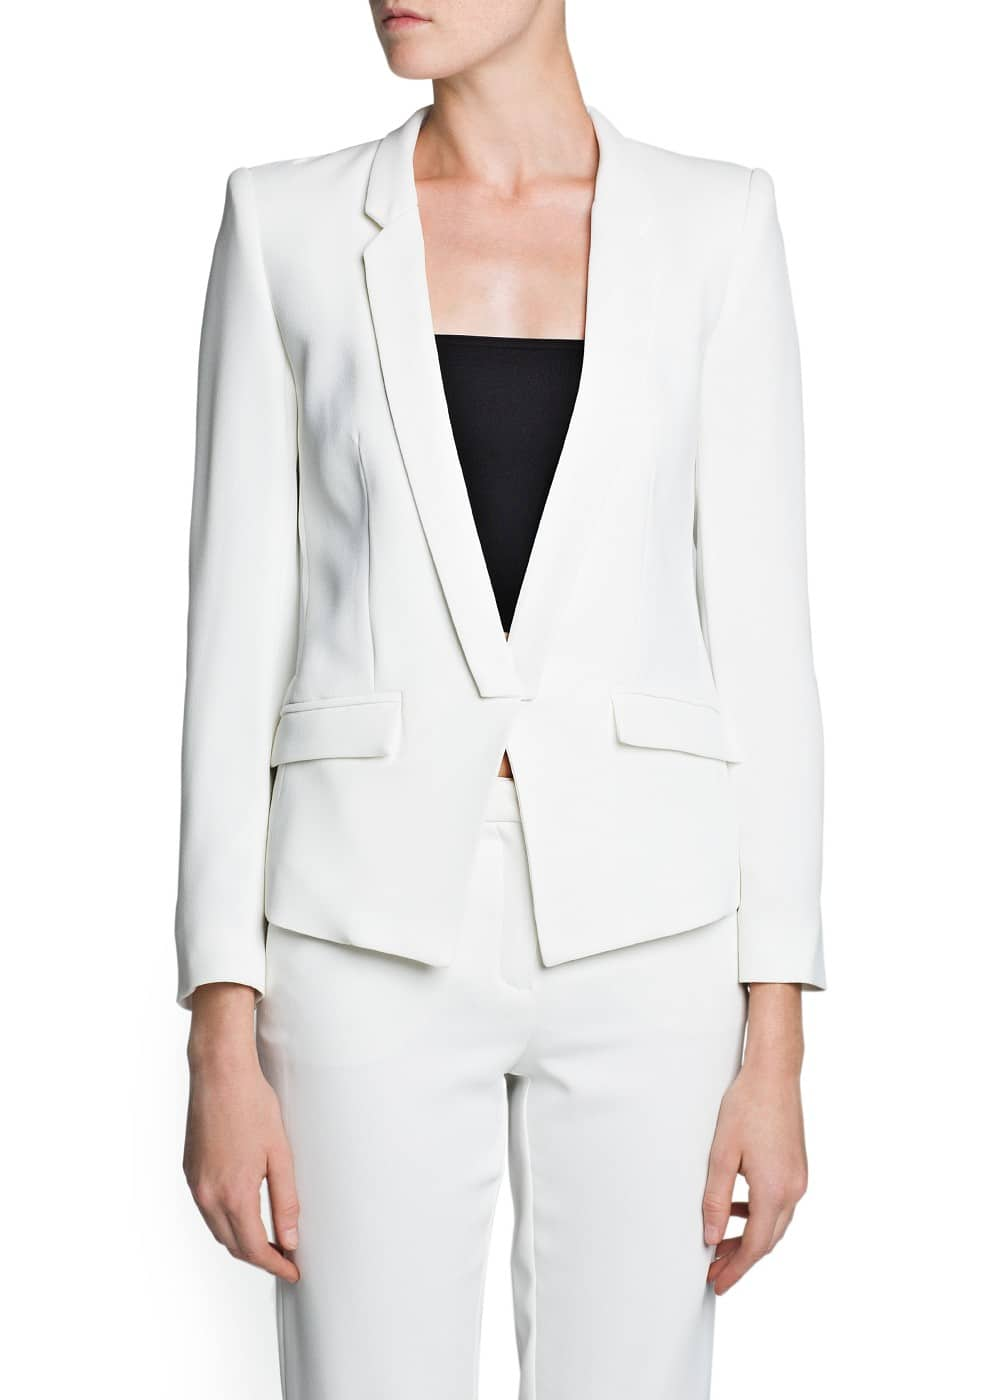 Tailored suit blazer